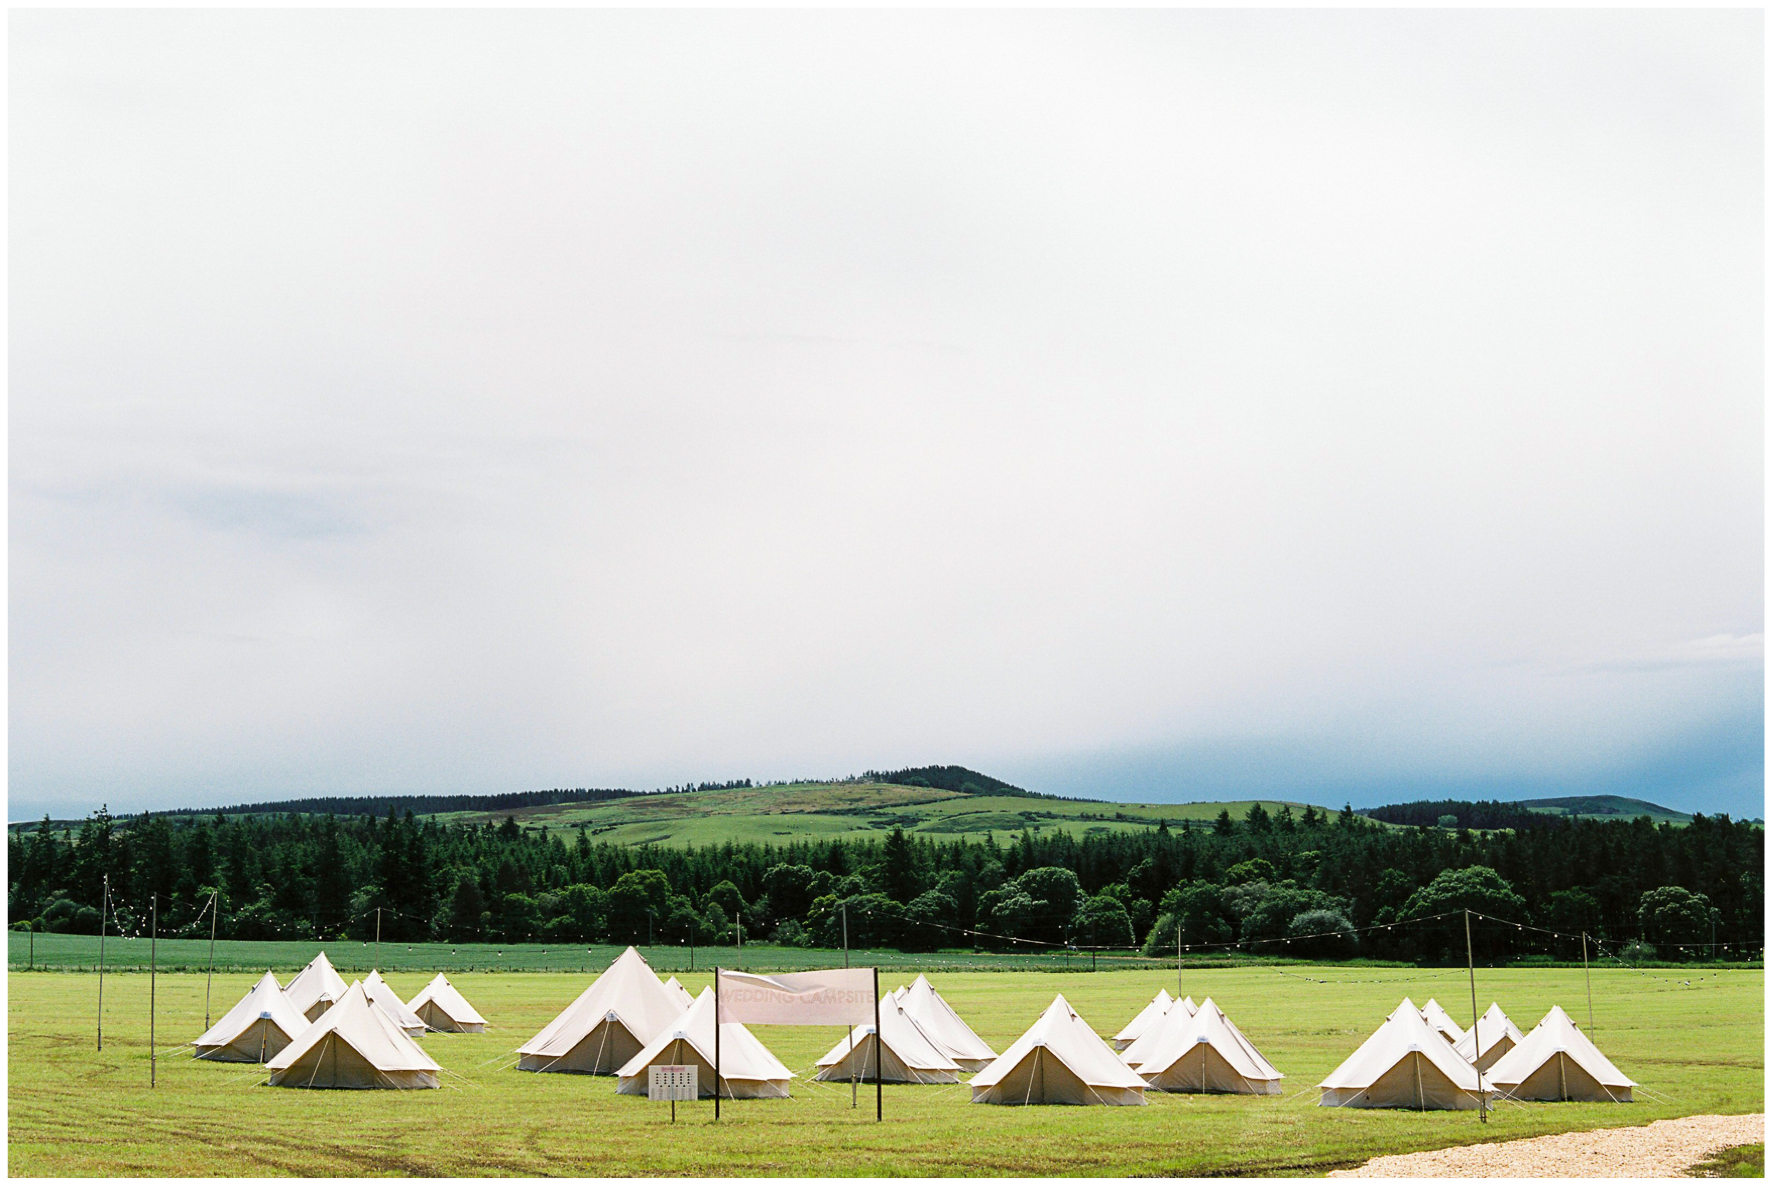 glamping wedding, Lucy Davenport Photography, home wedding, Sperry tent, PapaKata, bell tents